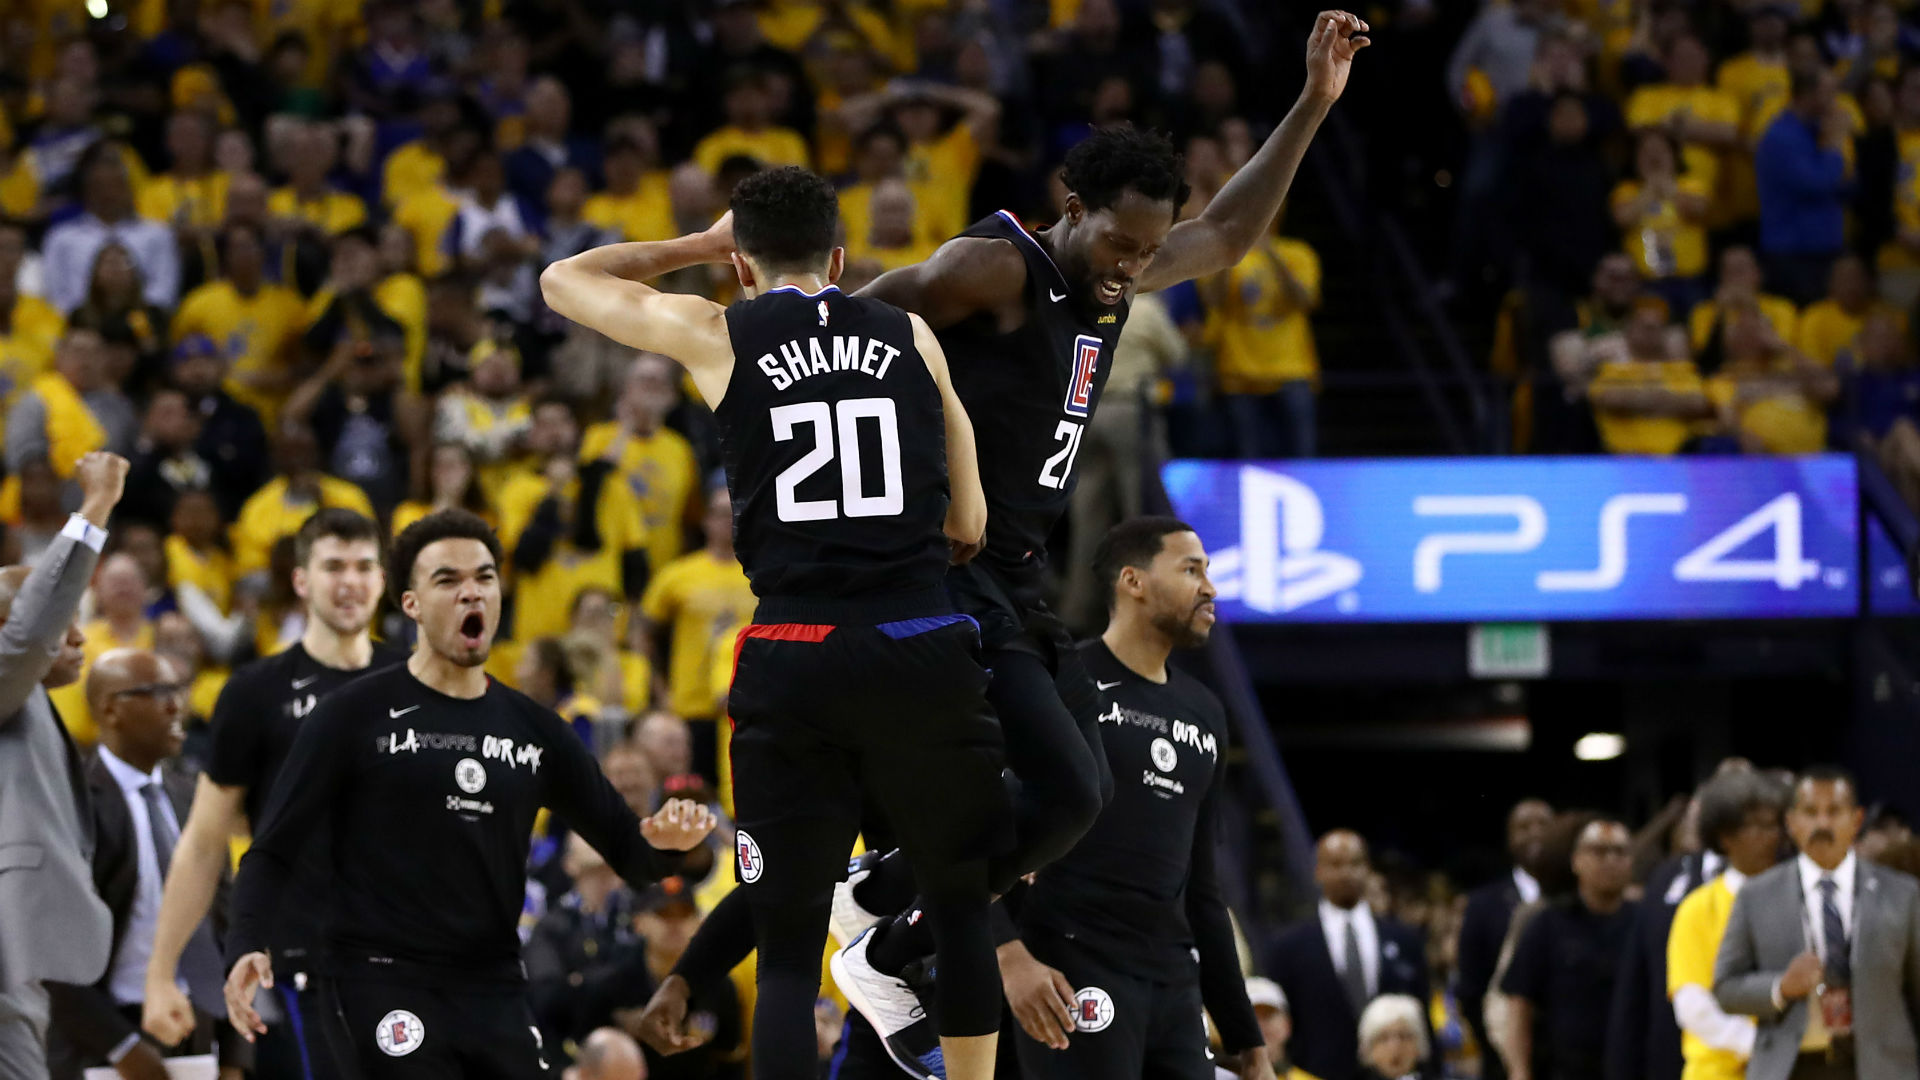 Nba Playoffs 2019 Scores And Highlights From Nets Vs